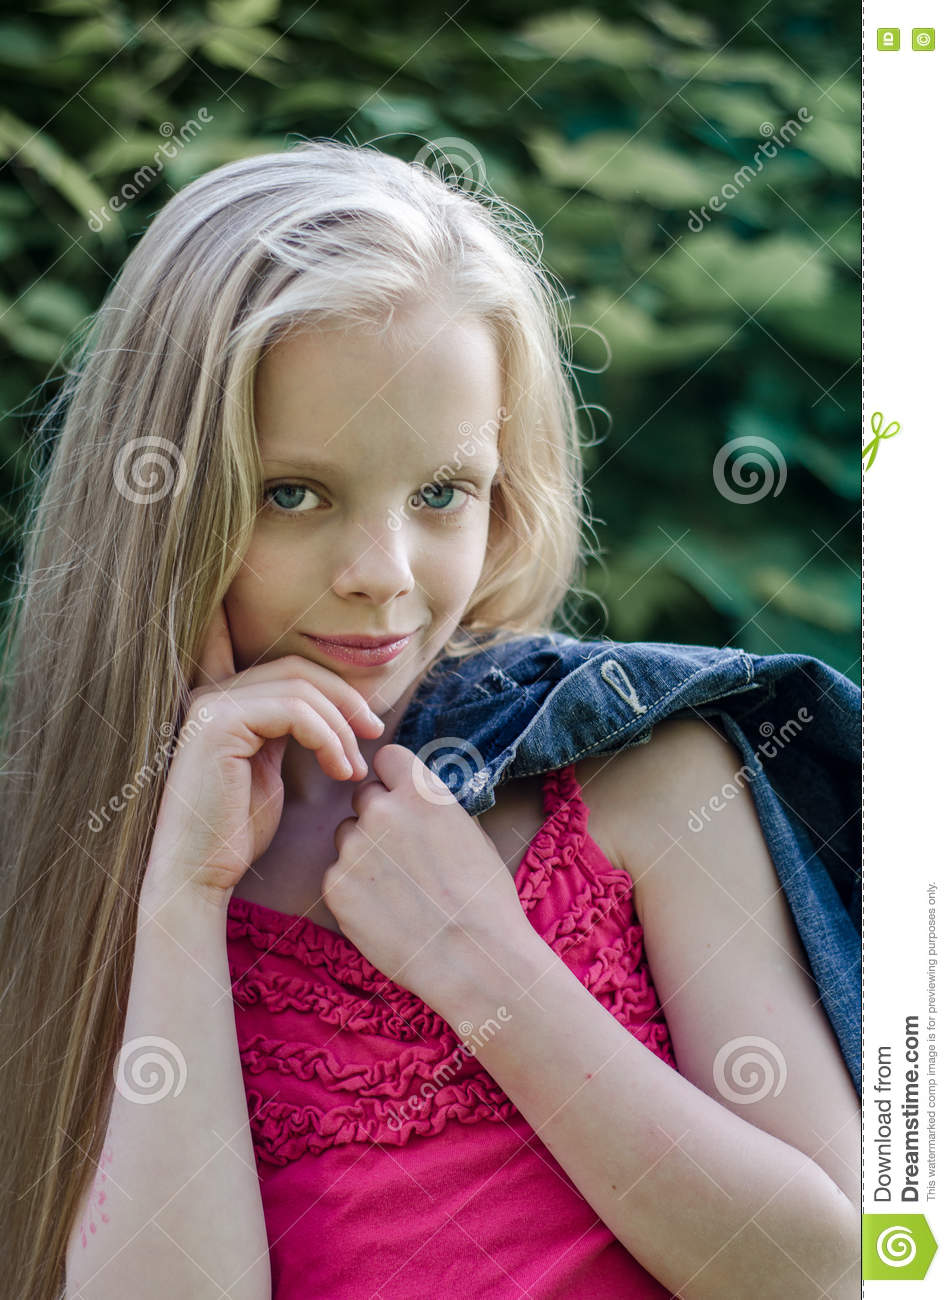 Girl With The Blog: Portrait Of A Beautiful Blonde Little Girl With Long Hair